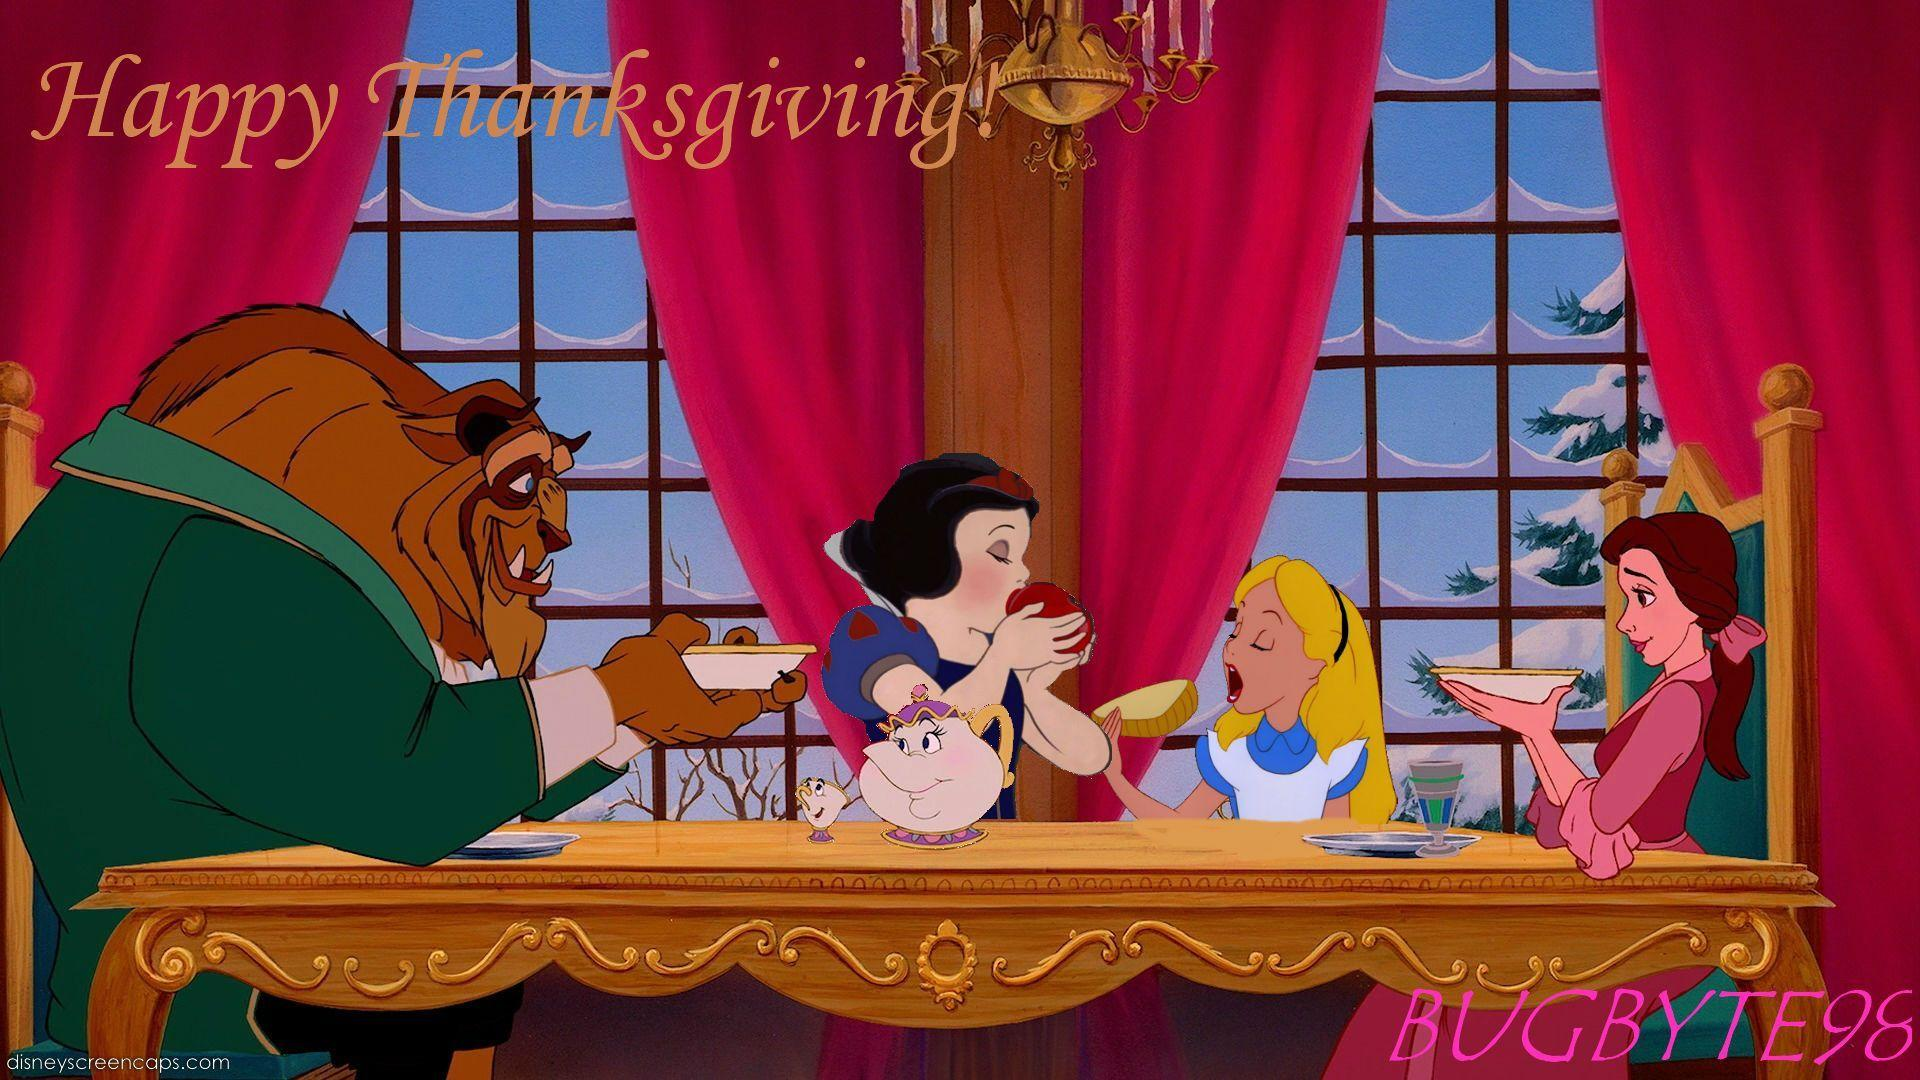 Disney Thanksgiving Wallpapers HD Free Download